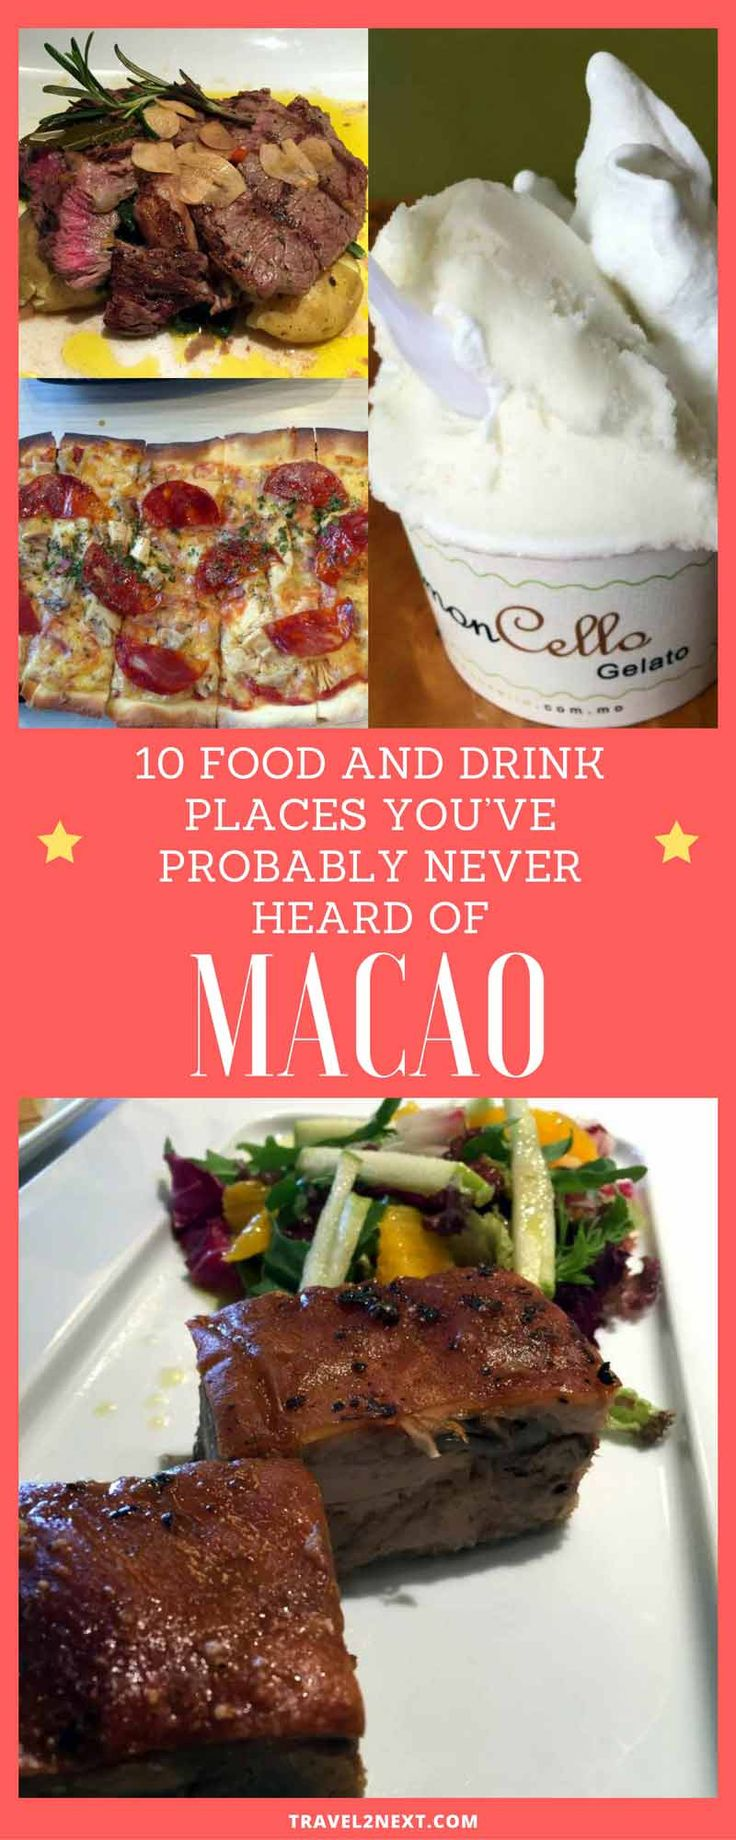 10 Macau food and drink places you've probably never heard of. Move over Michelin and Macanese.